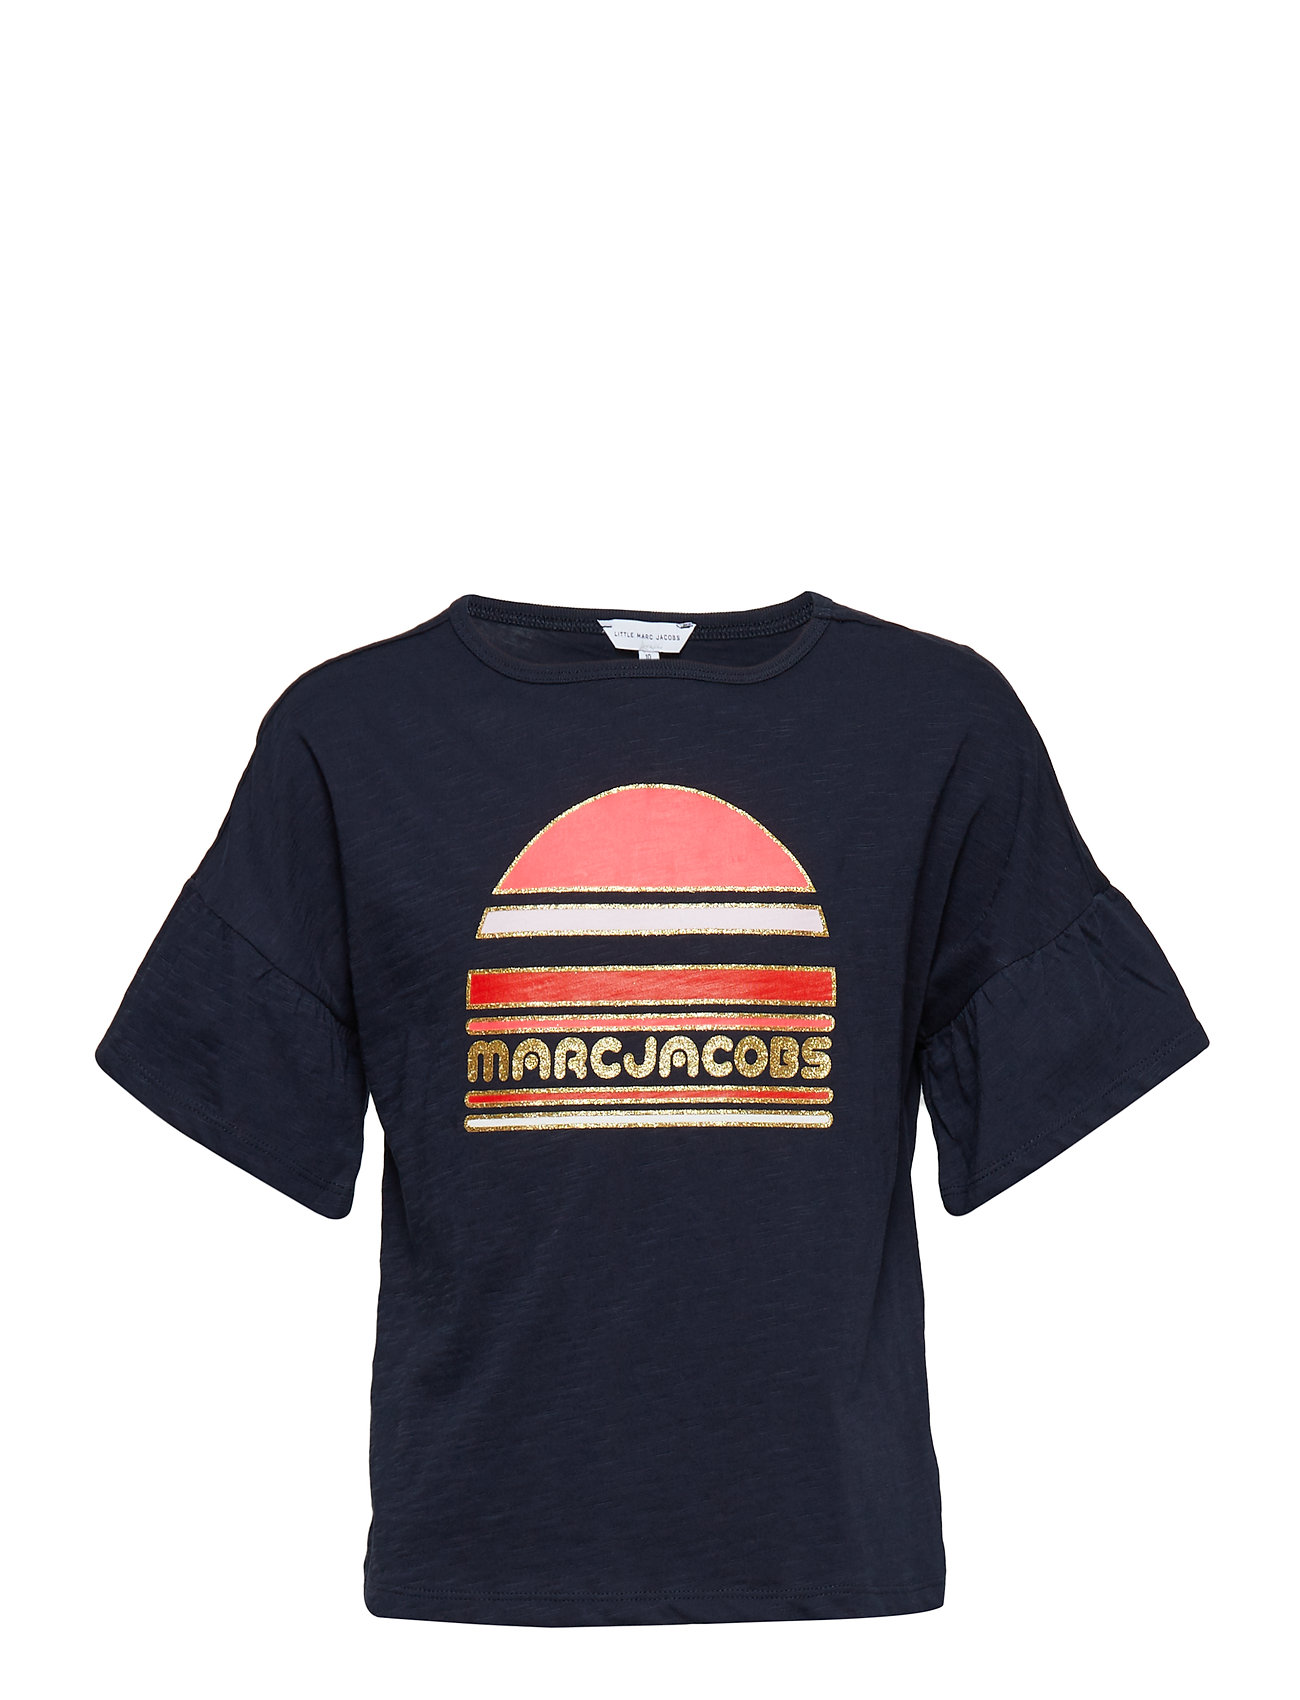 Little Marc Jacobs T-SHIRT - NAVY